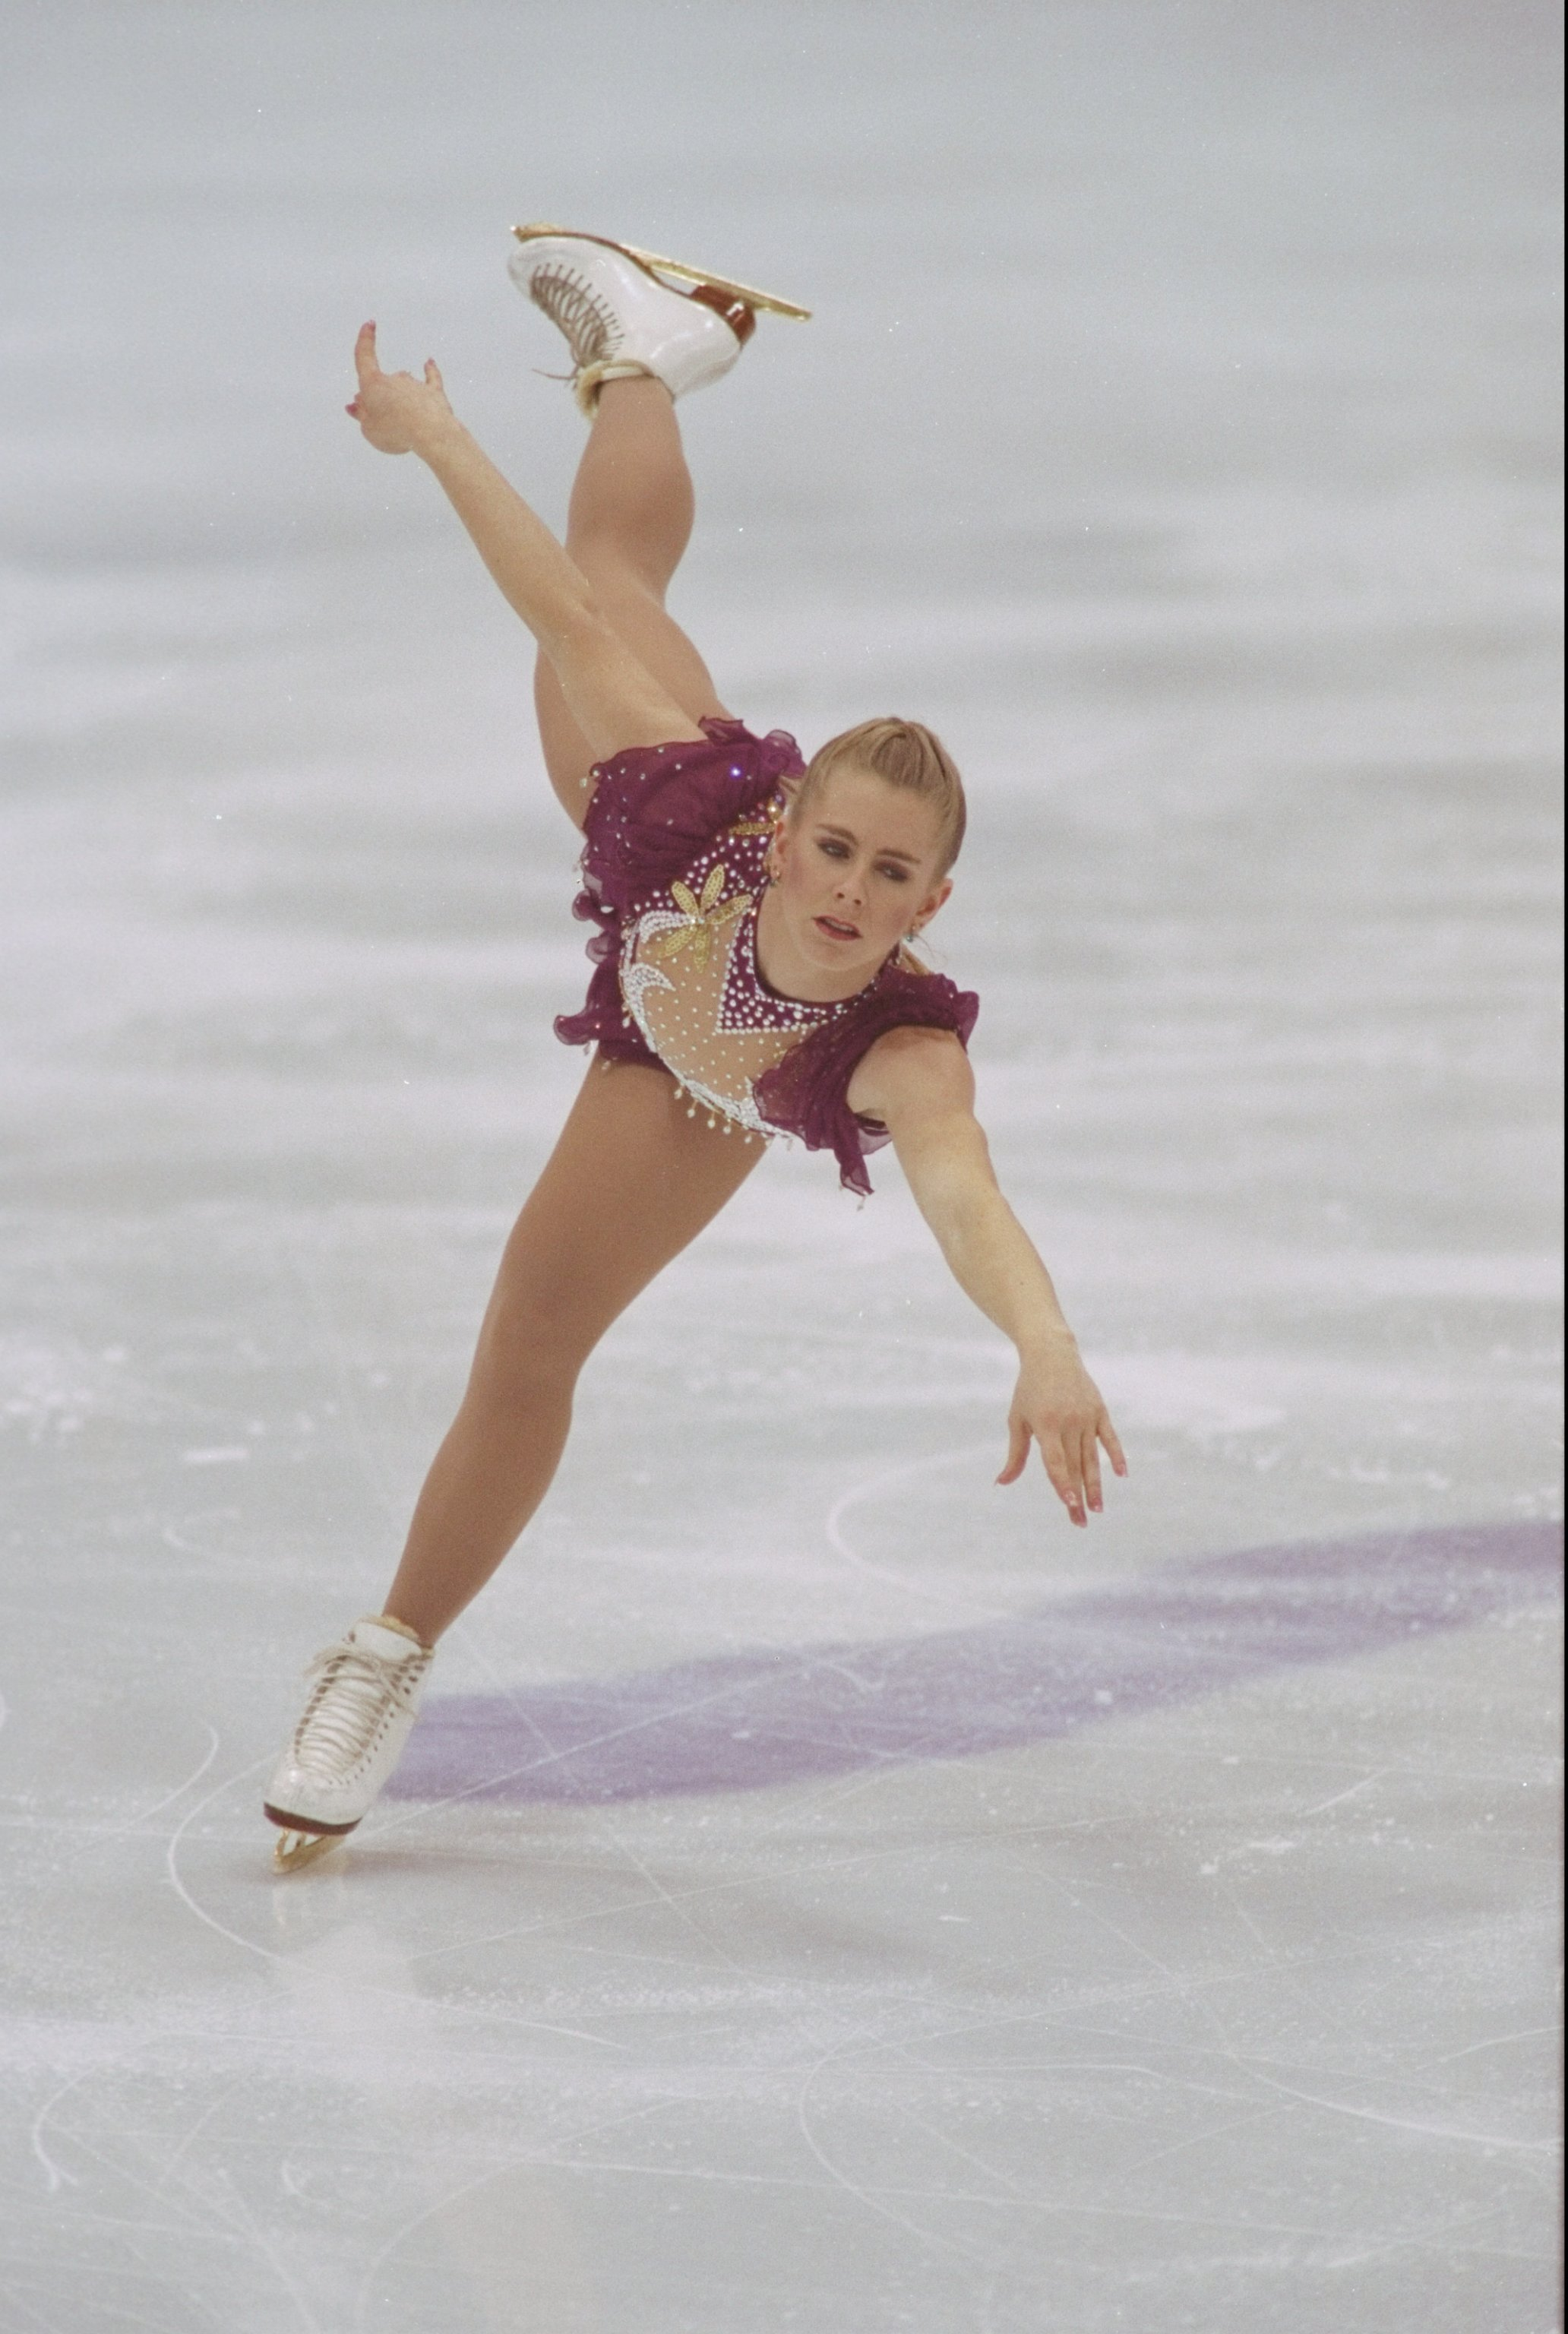 1994 Winter Olympics, Tonya Harding performs in Hamar, Norway | Source: Gety Images